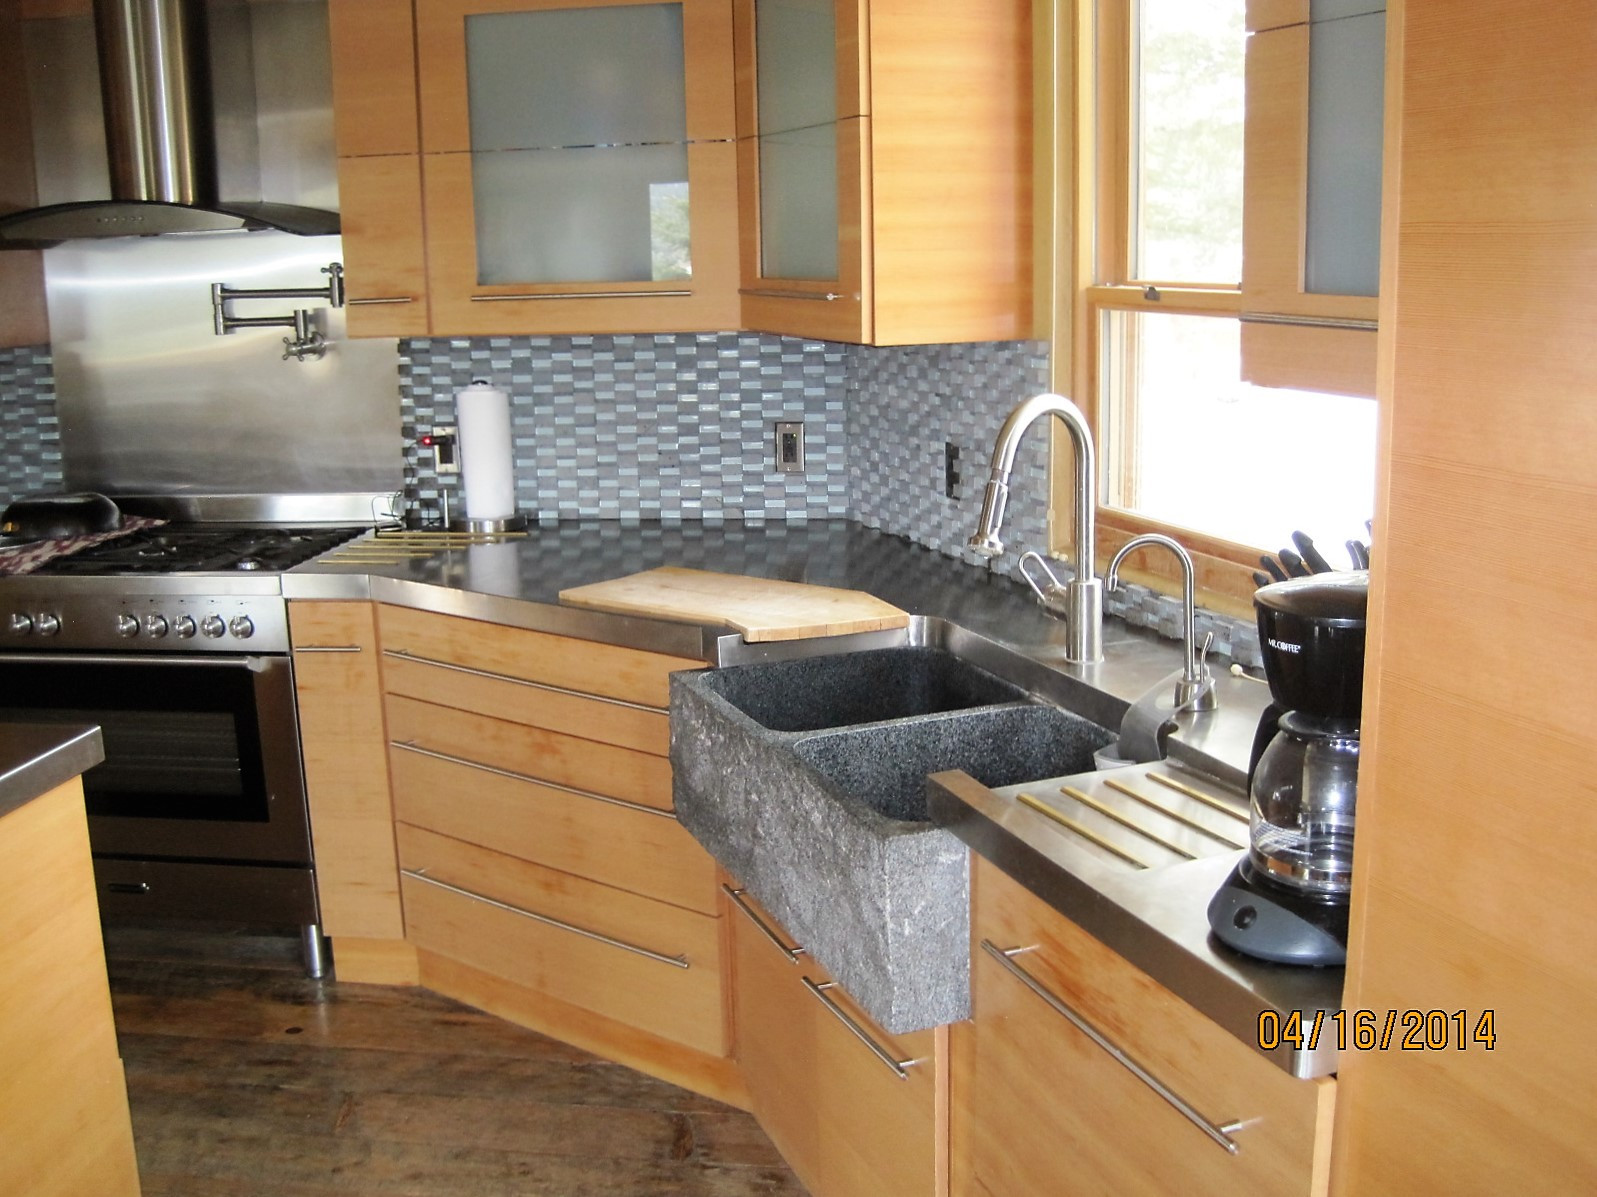 stainless counter8 - Copy.JPG